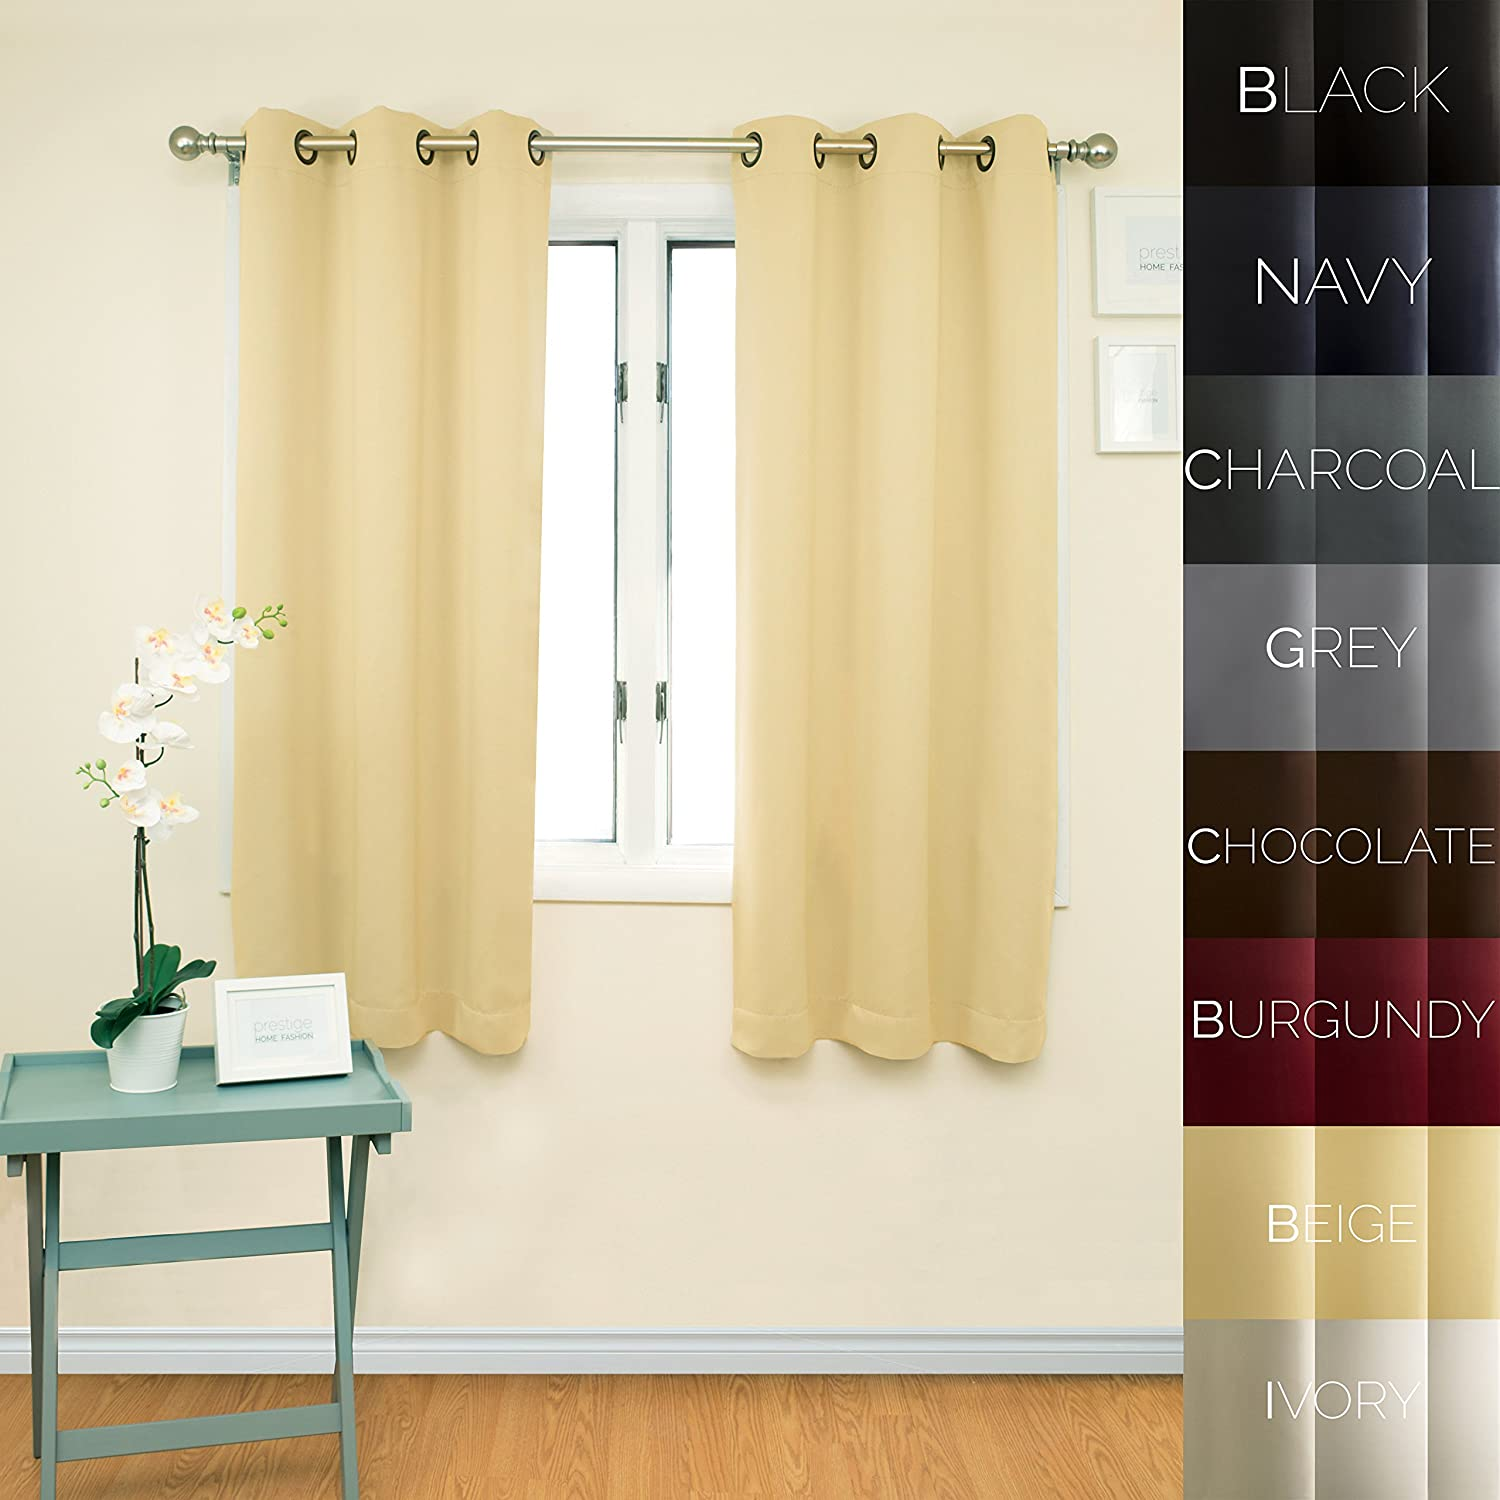 thermal blackout curtainsthermal remarkable rods curtains insulated images by patio curtain at design door amazon